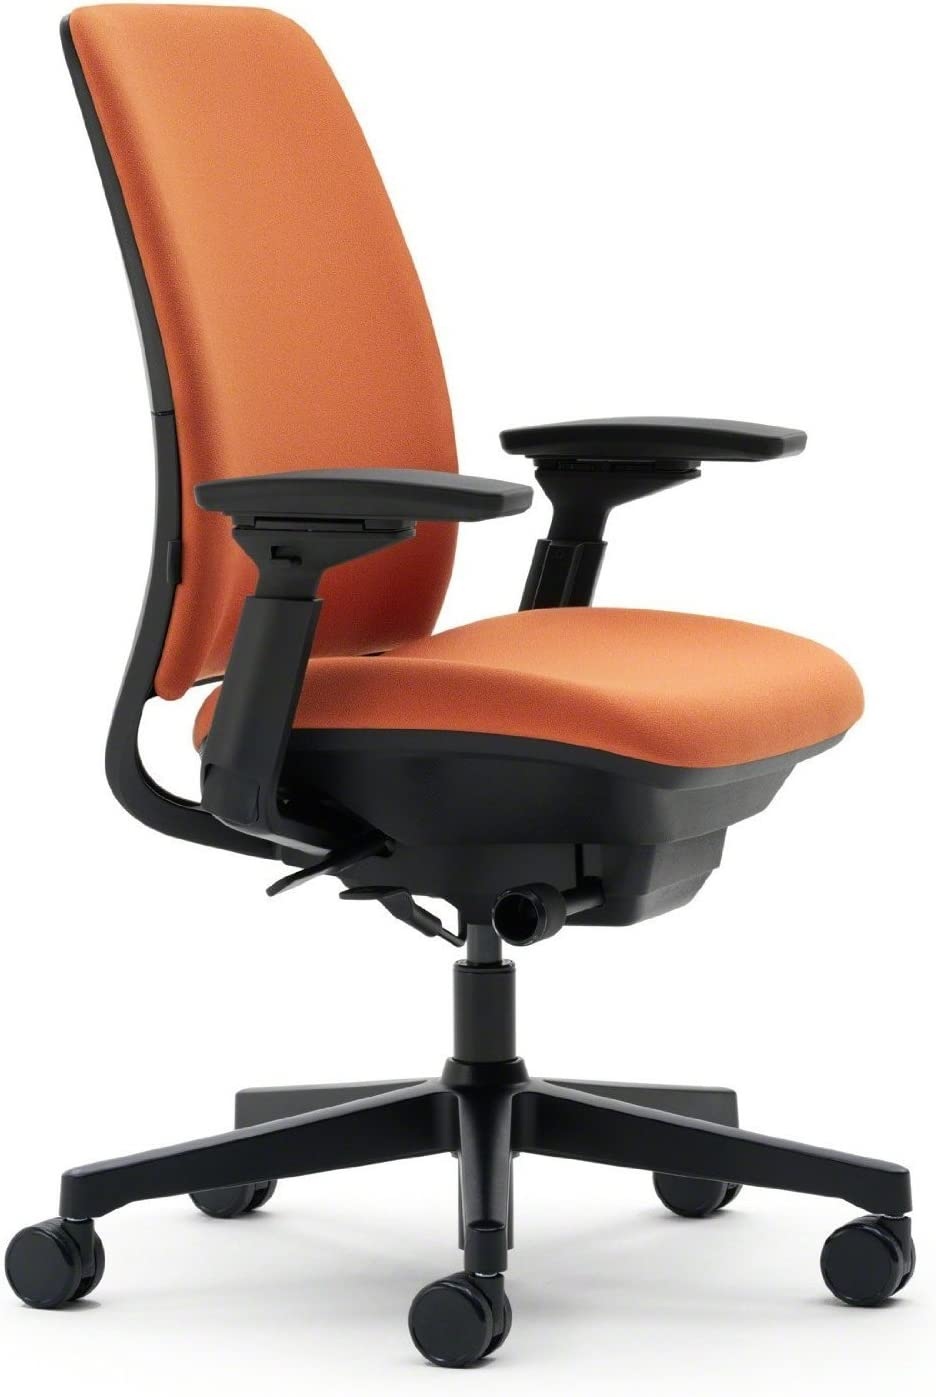 Steelcase Amia Ergonomic Office Chair with Adjustable Back Tension and Arms | Flexible Lumbar with Sliding Seat | Black Frame and Buzz2 Pumpkin Fabric